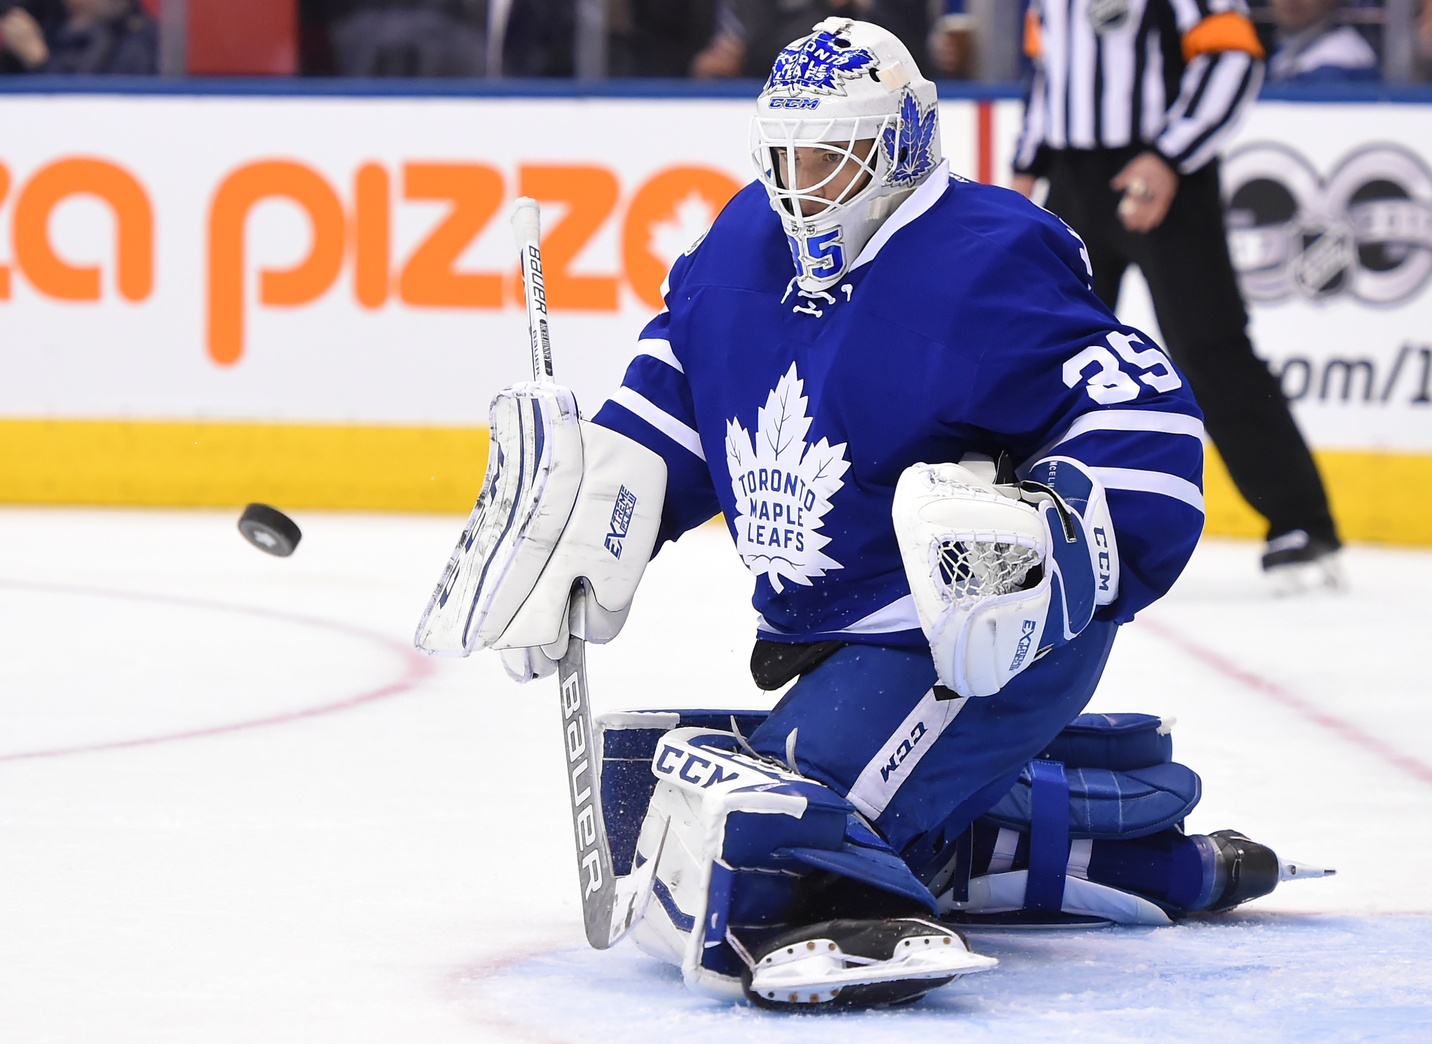 Maple Leafs try to avenge loss to Devils